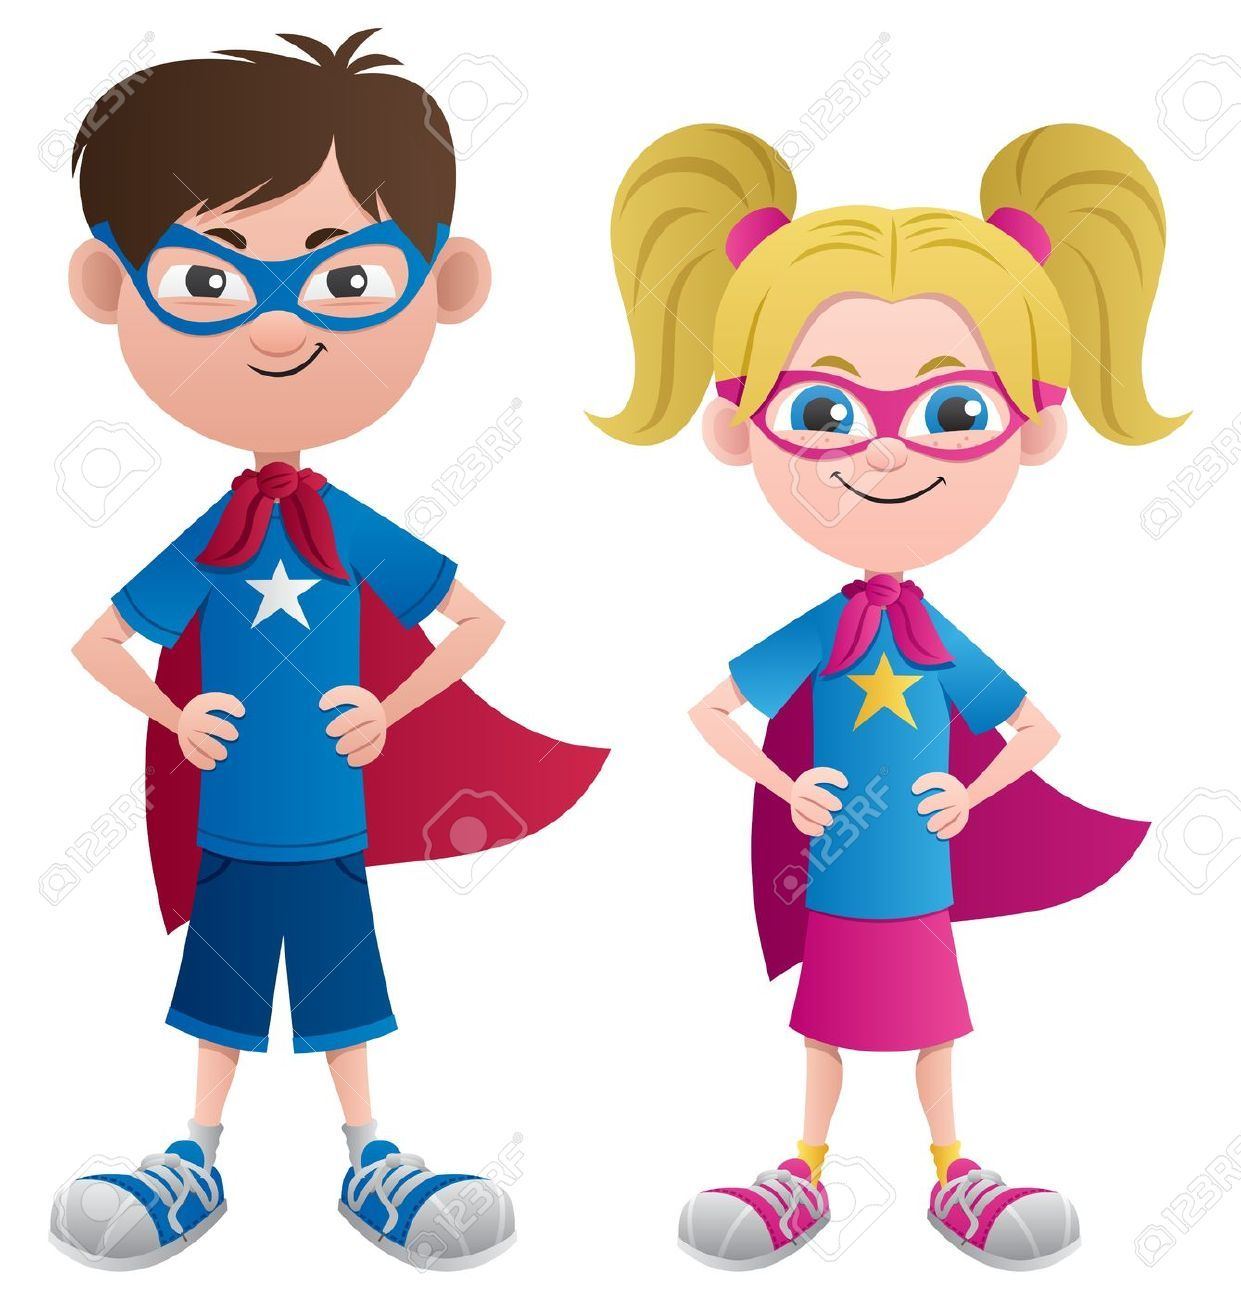 Boy and girl superhero clipart graphic freeuse Superhero boy and girl clipart 2 » Clipart Portal graphic freeuse